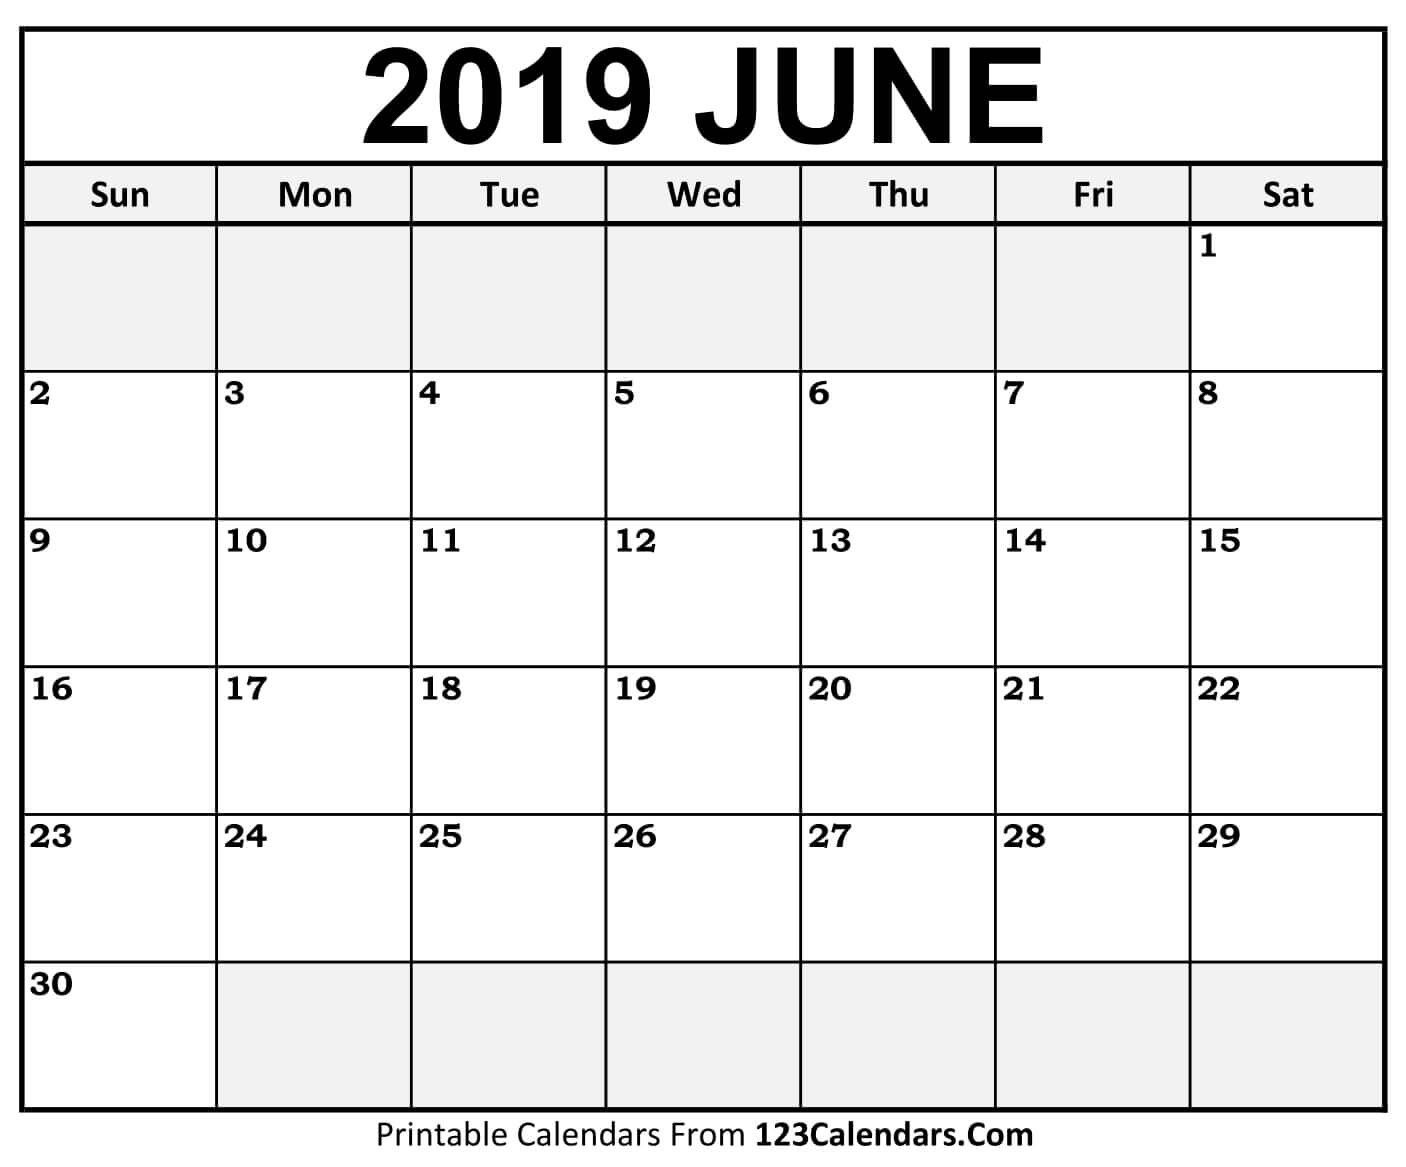 Free Printable 2019 Monthly Calendars Free Printable 2019 Monthly Calendar with Holidays Word